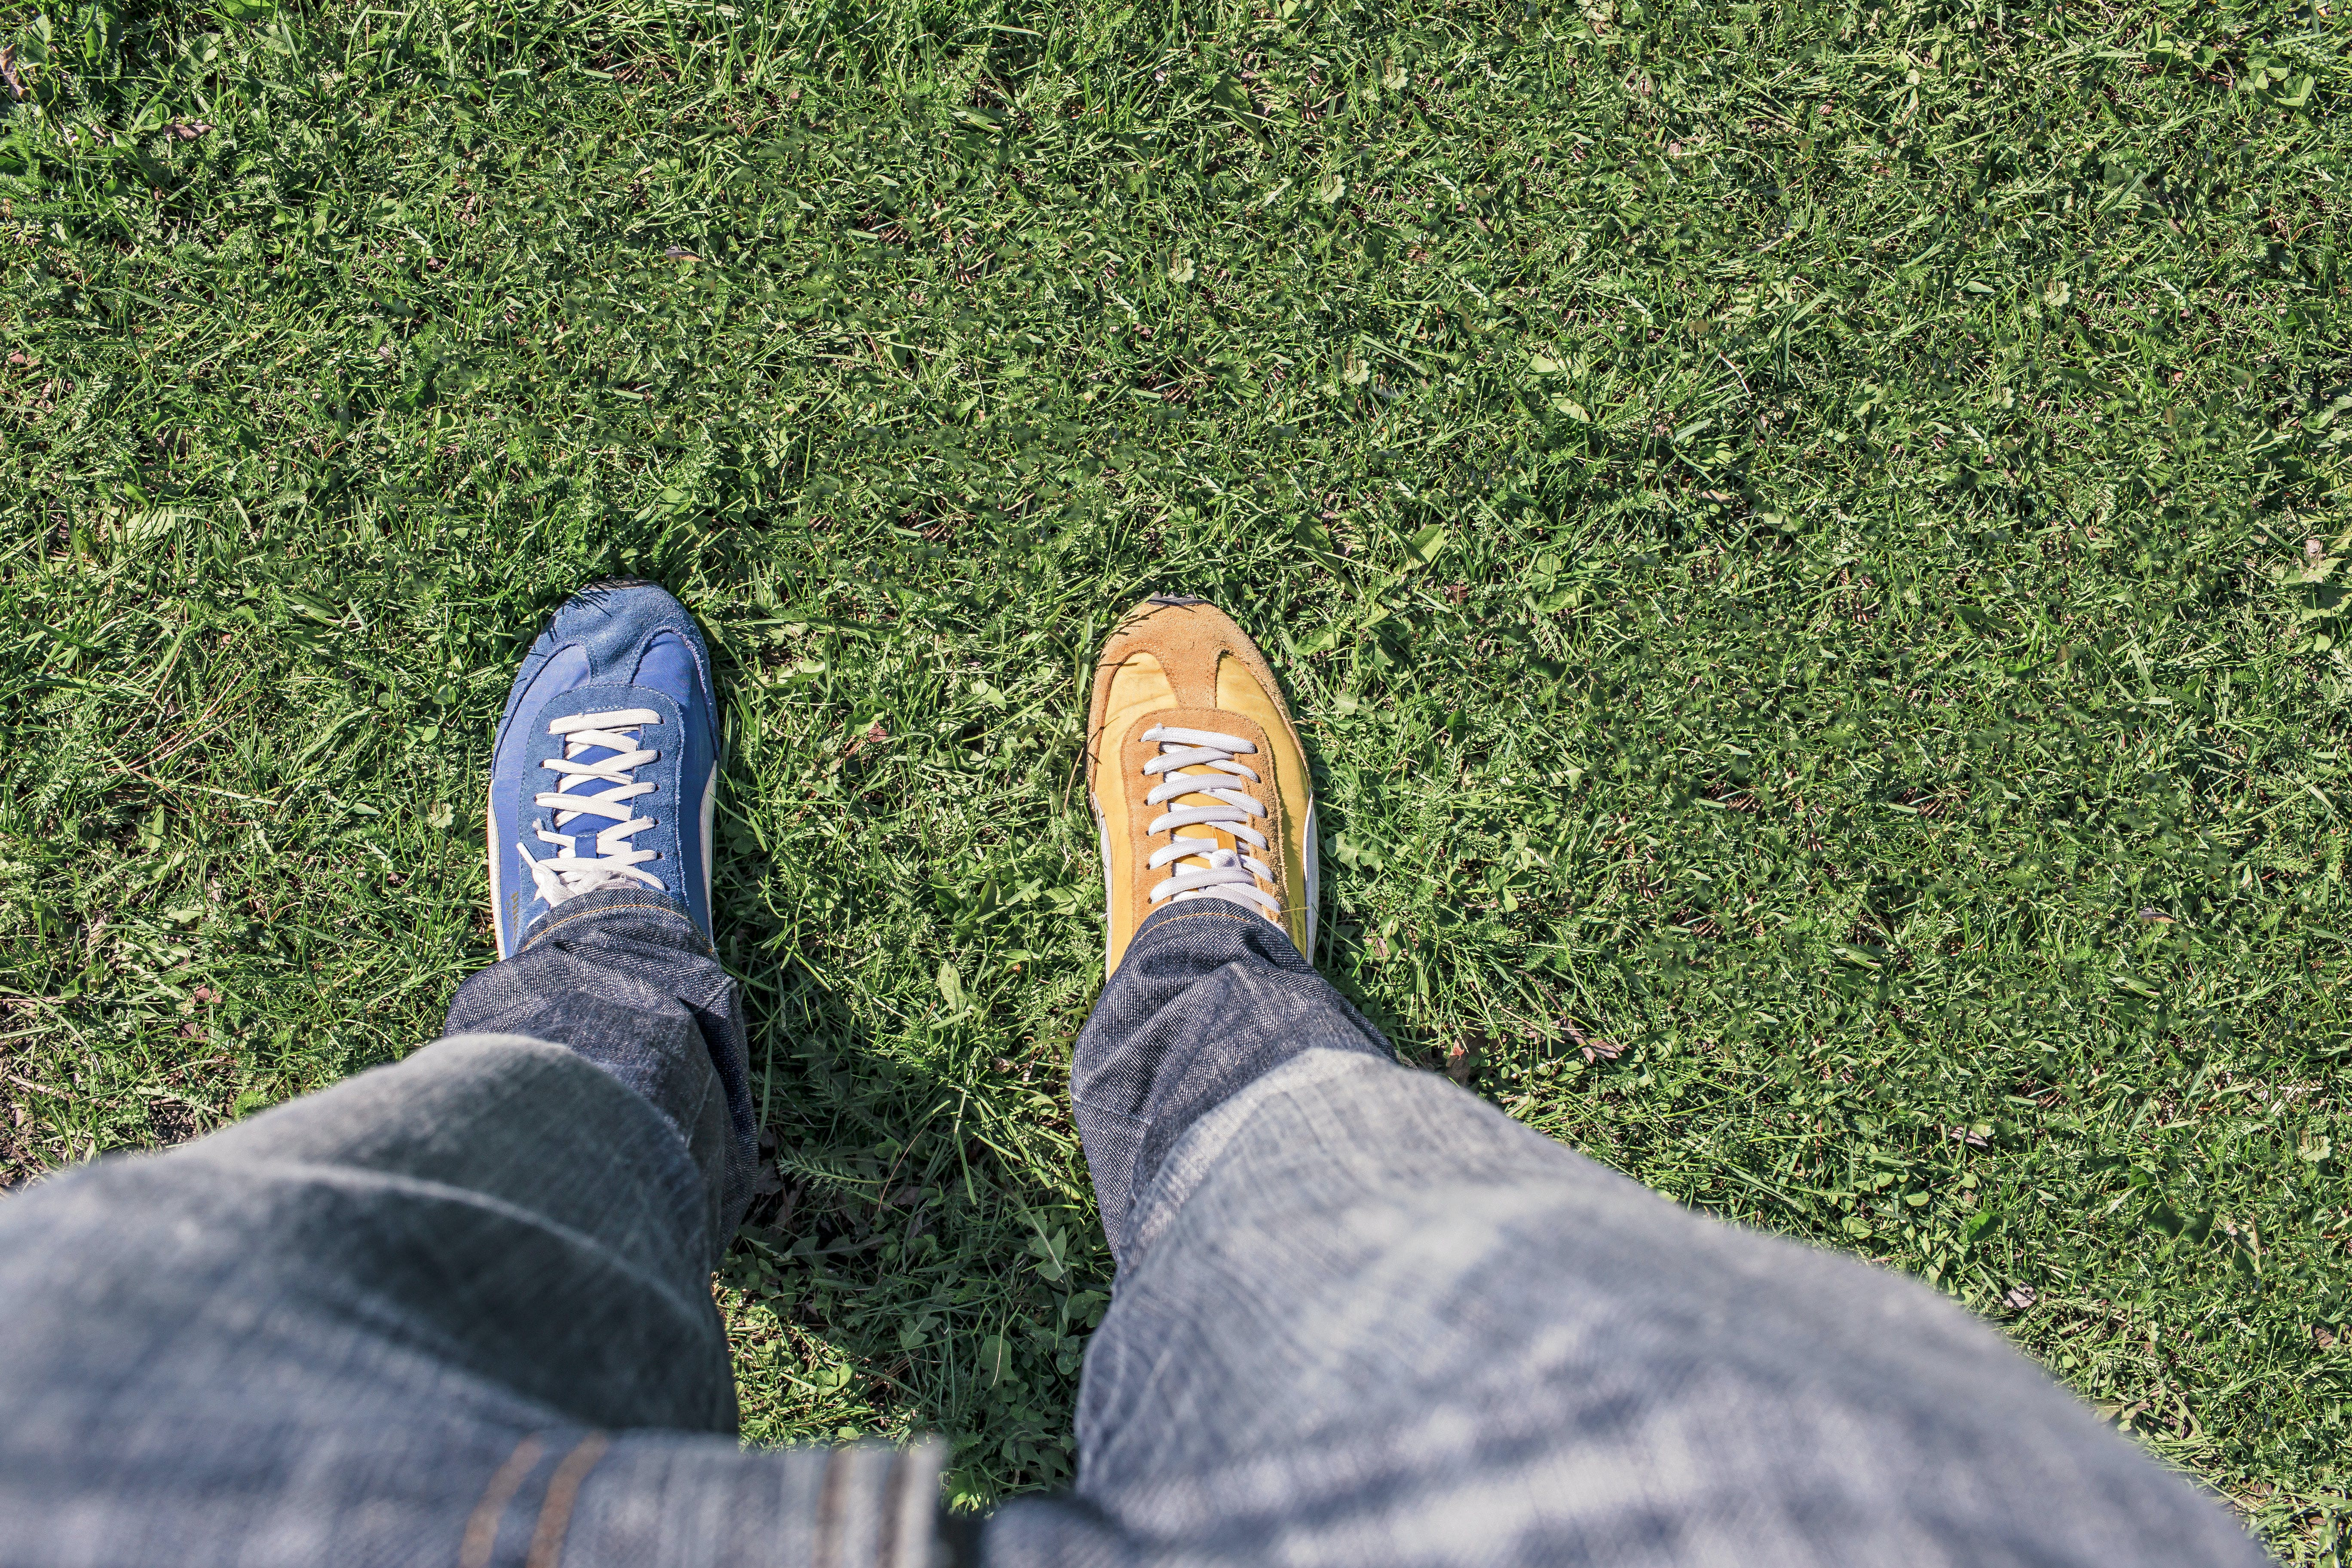 Person Wearing Unpaired Running Shoes Standing on Green Grass